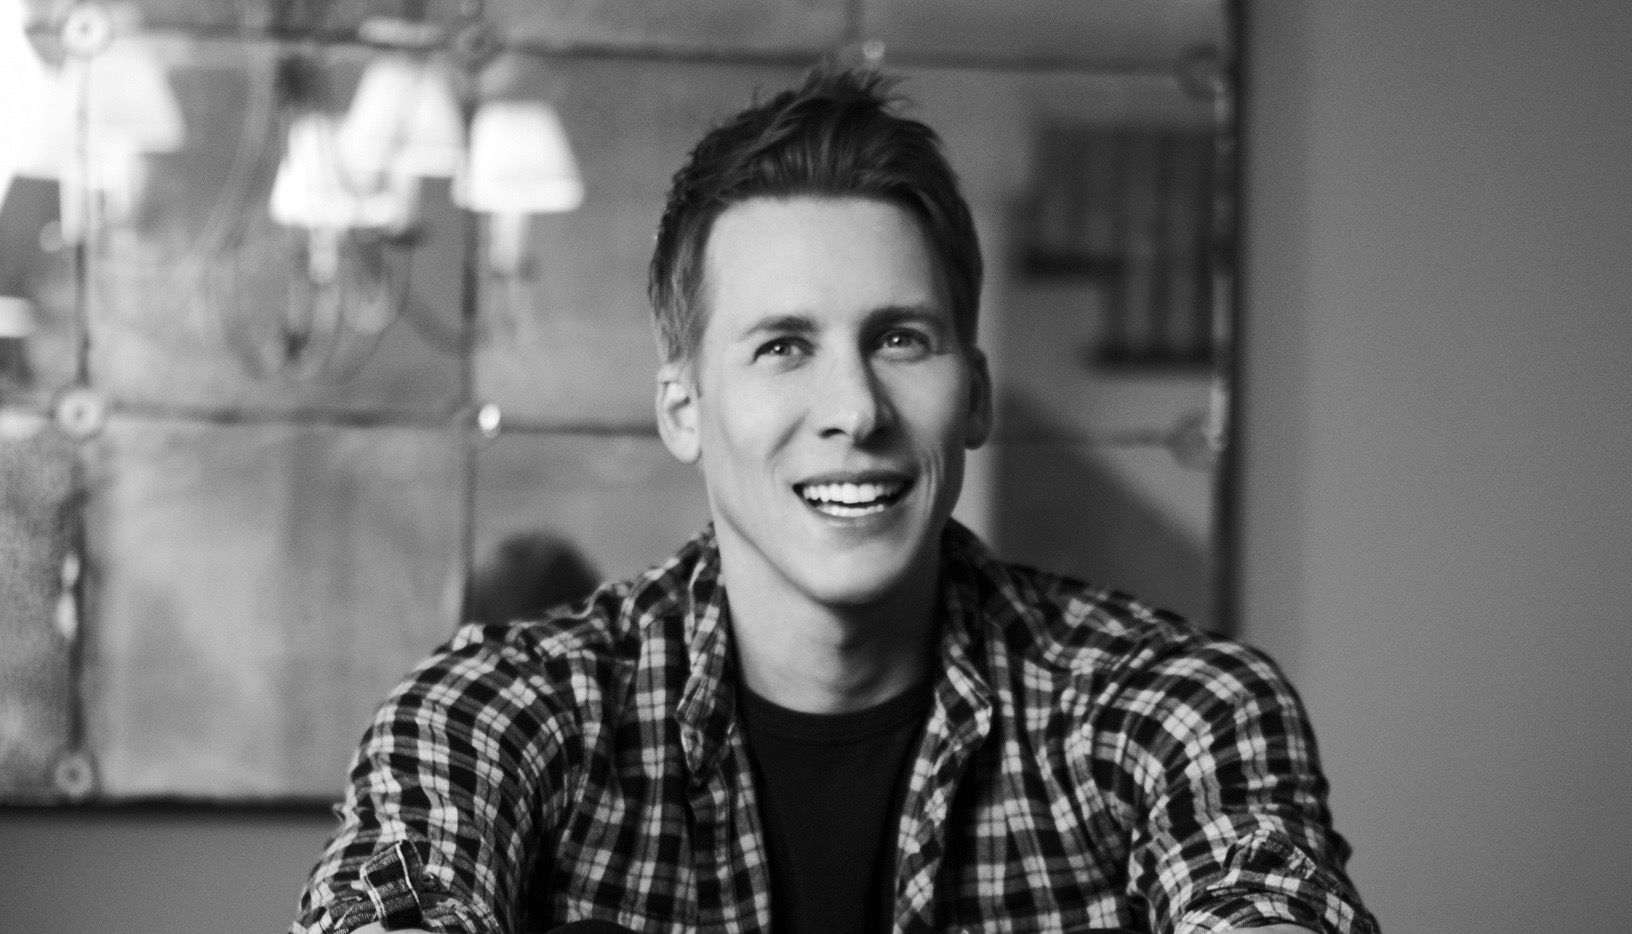 Dustin Lance Black is pushing for the Equality Act, which would amend the Civil Rights Act to prohibit discrimination on the basis of sexual orientation and gender identity in employment, housing, public accommodations, public education, federal funding, credit and the jury system.